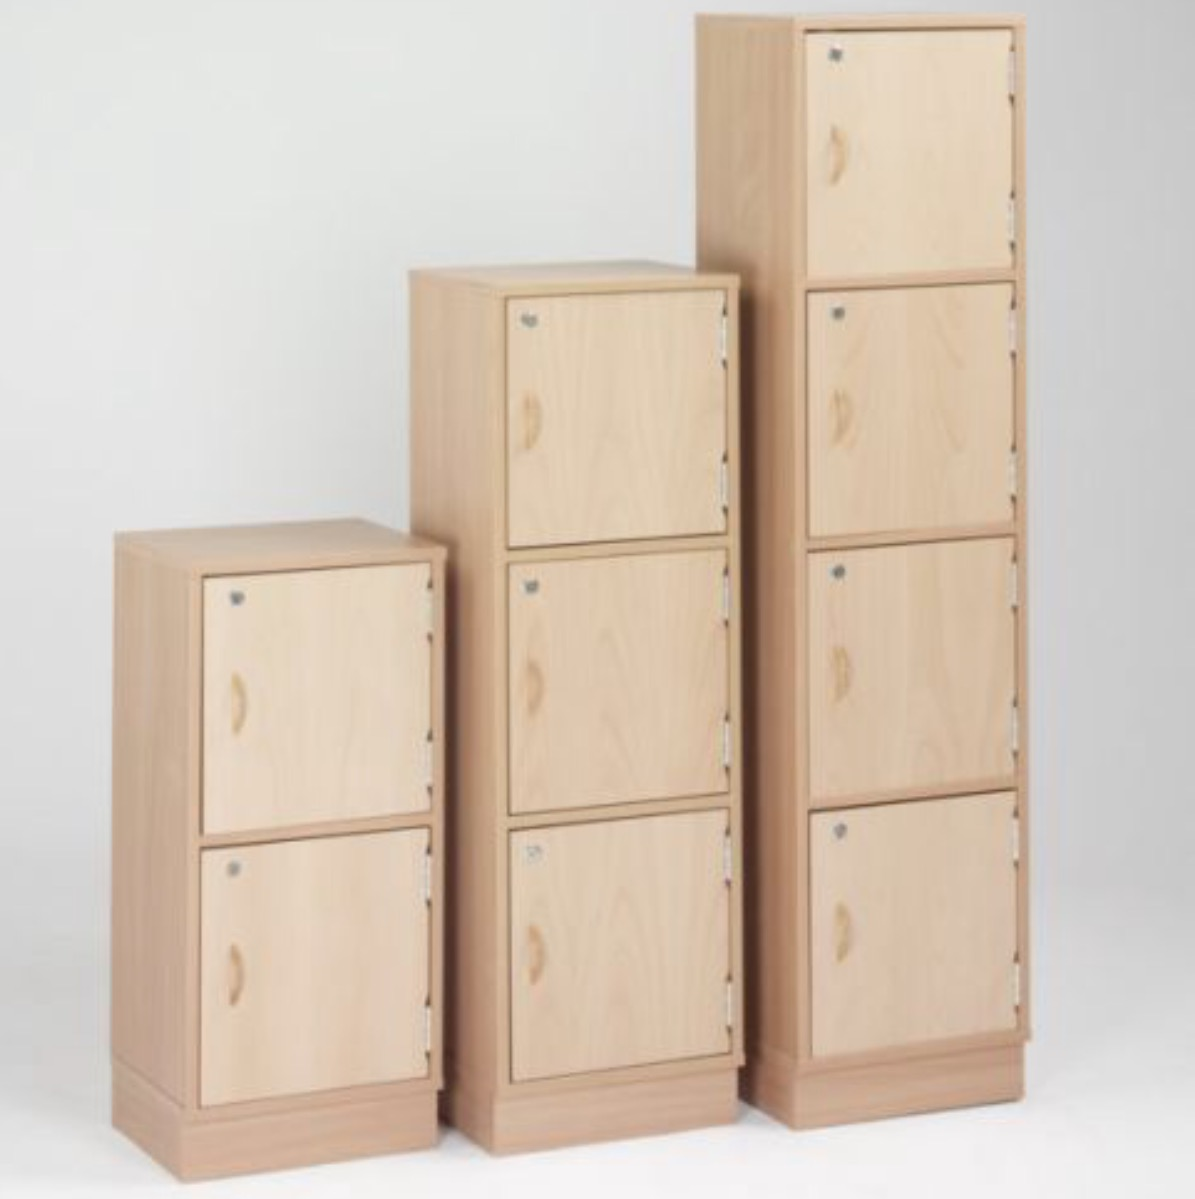 wooden locker 9 door beech 1295h x 1165w x 300d coloured ForWood Lockers With Doors